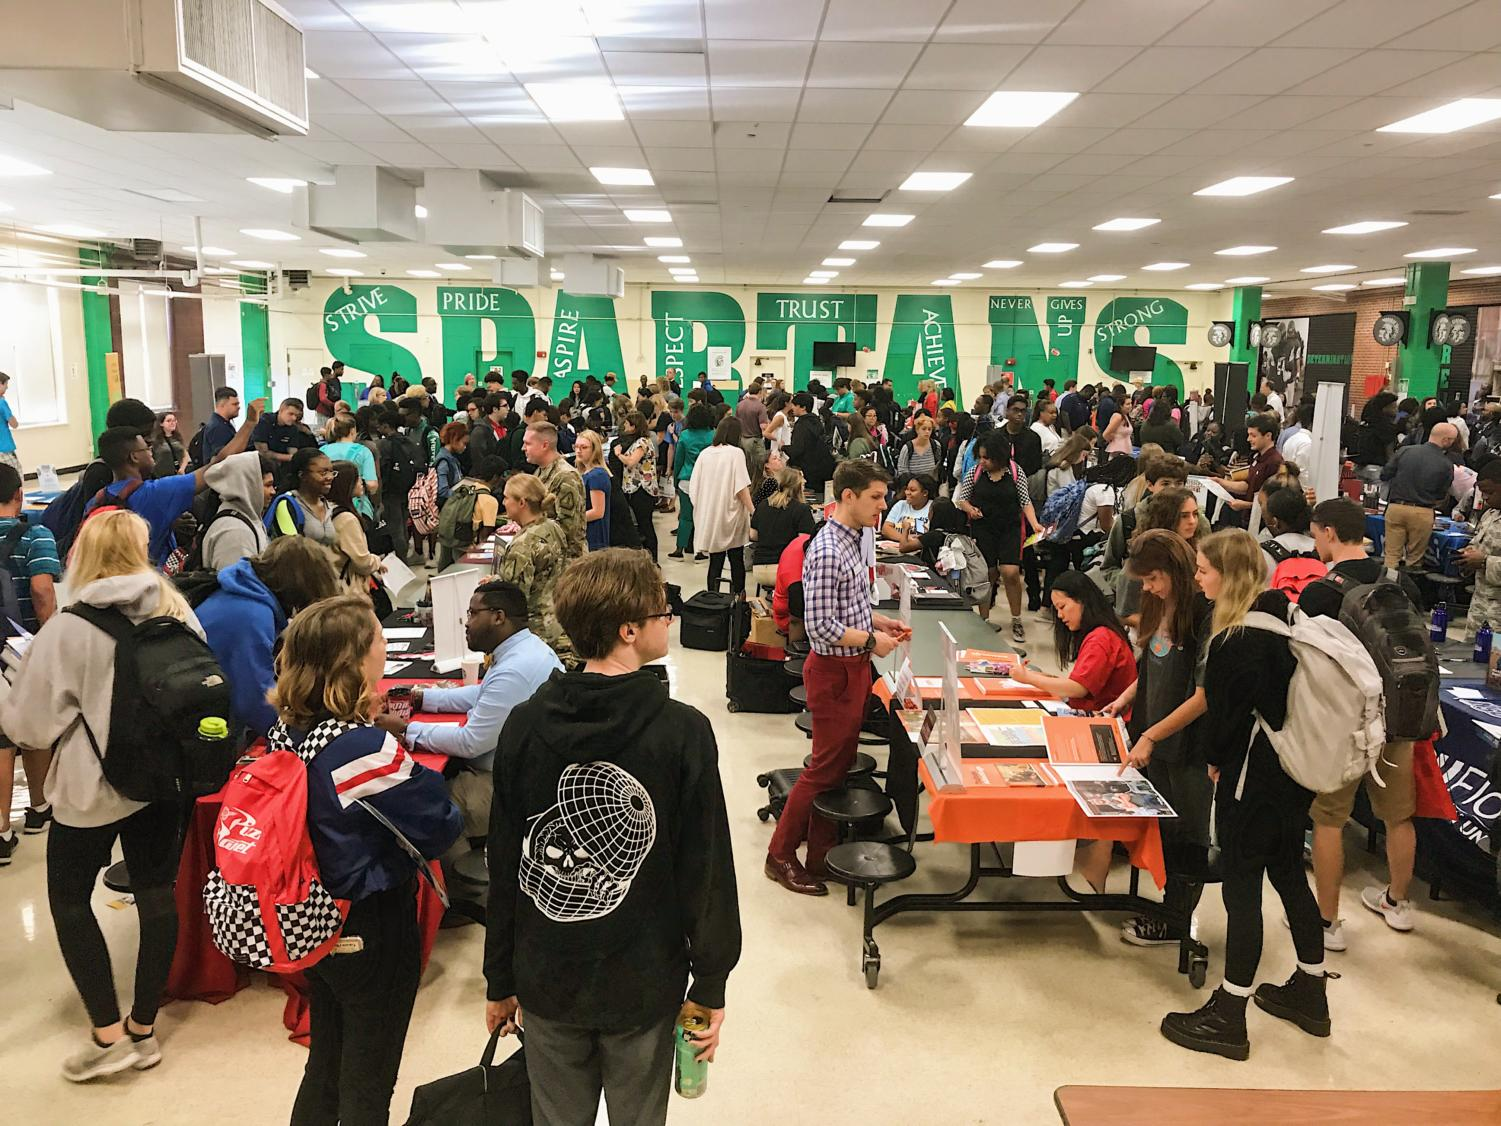 At the college fair, students were able to put a face to their admissions counselors and gain a better sense of the types of schools they want to apply to. Although juniors will apply their senior year, they still benefit from the experience.